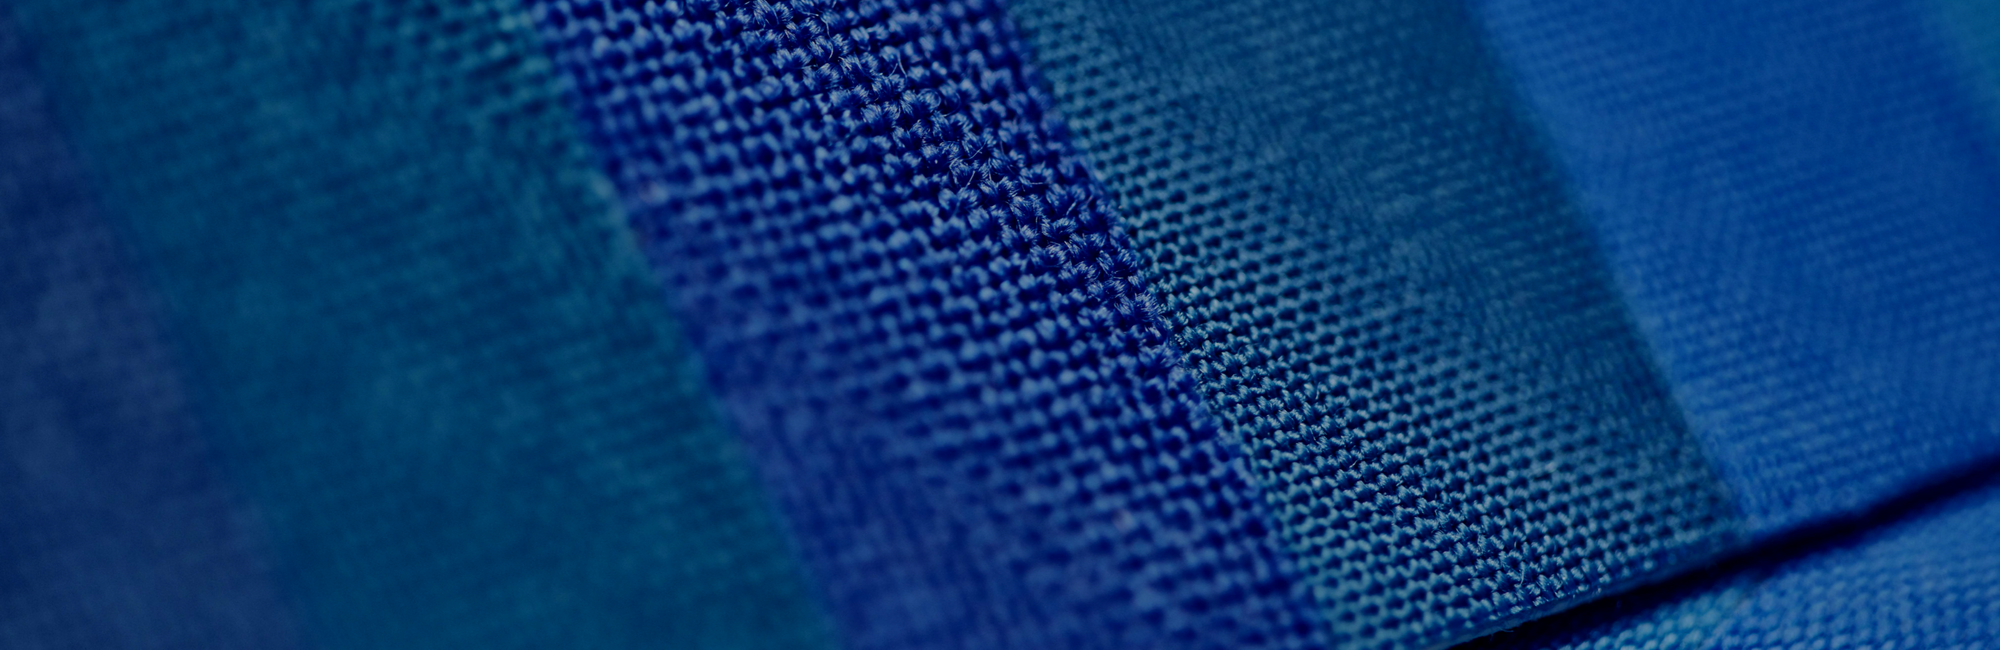 James Heal - Blue Wool test materials